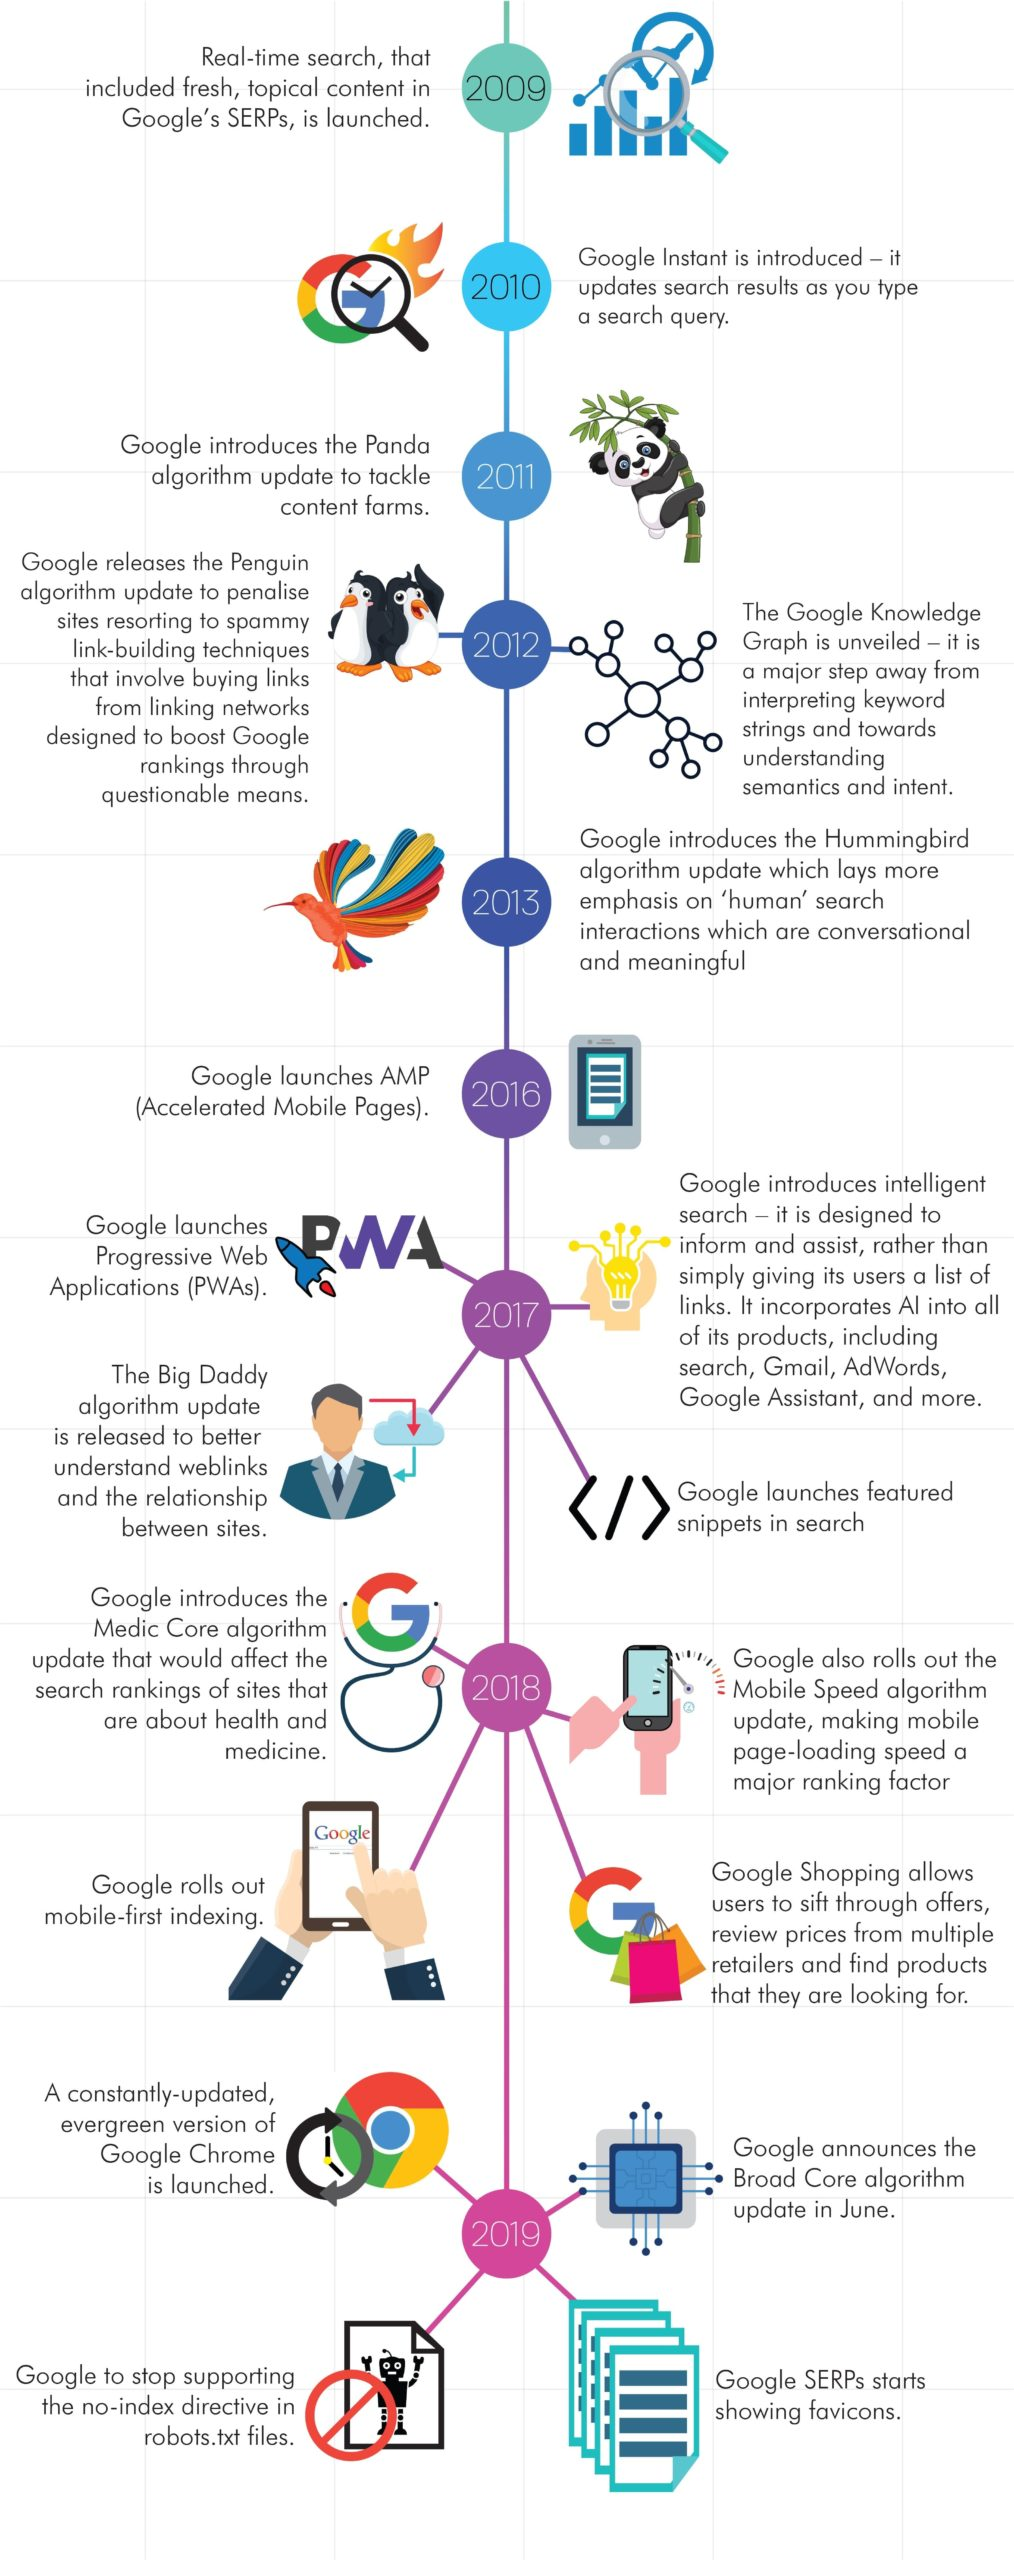 How Google has evolved over the years